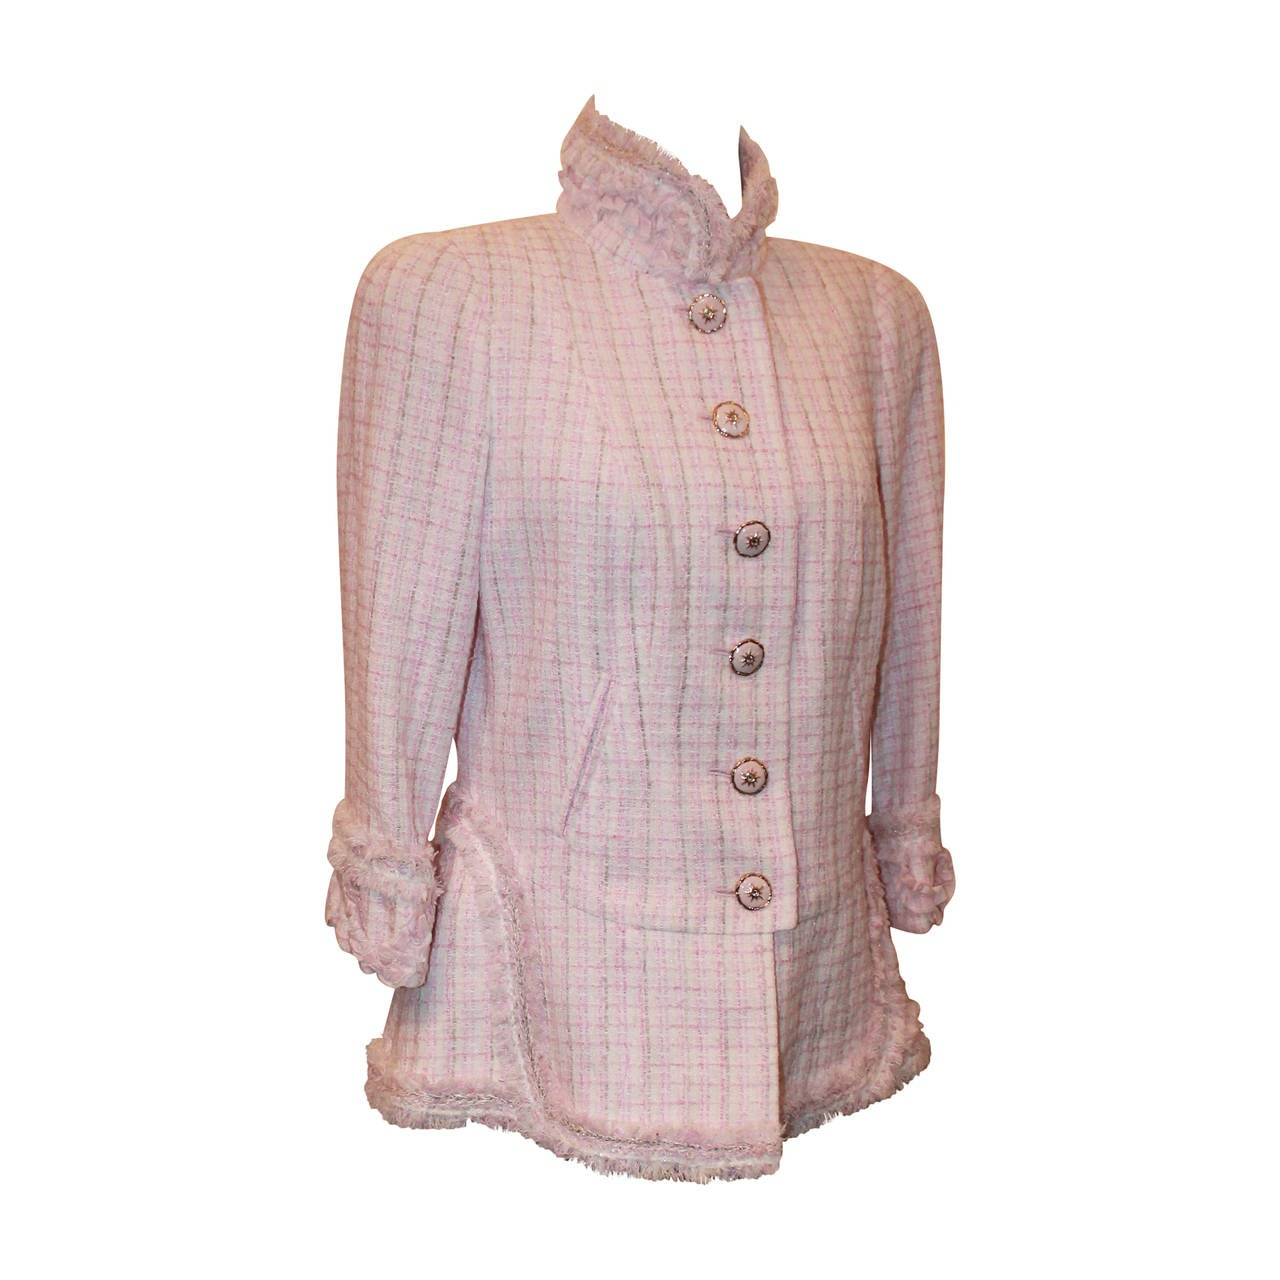 Chanel 2013 Light Pink and White Tweed Jacket with Fringe Detail ...